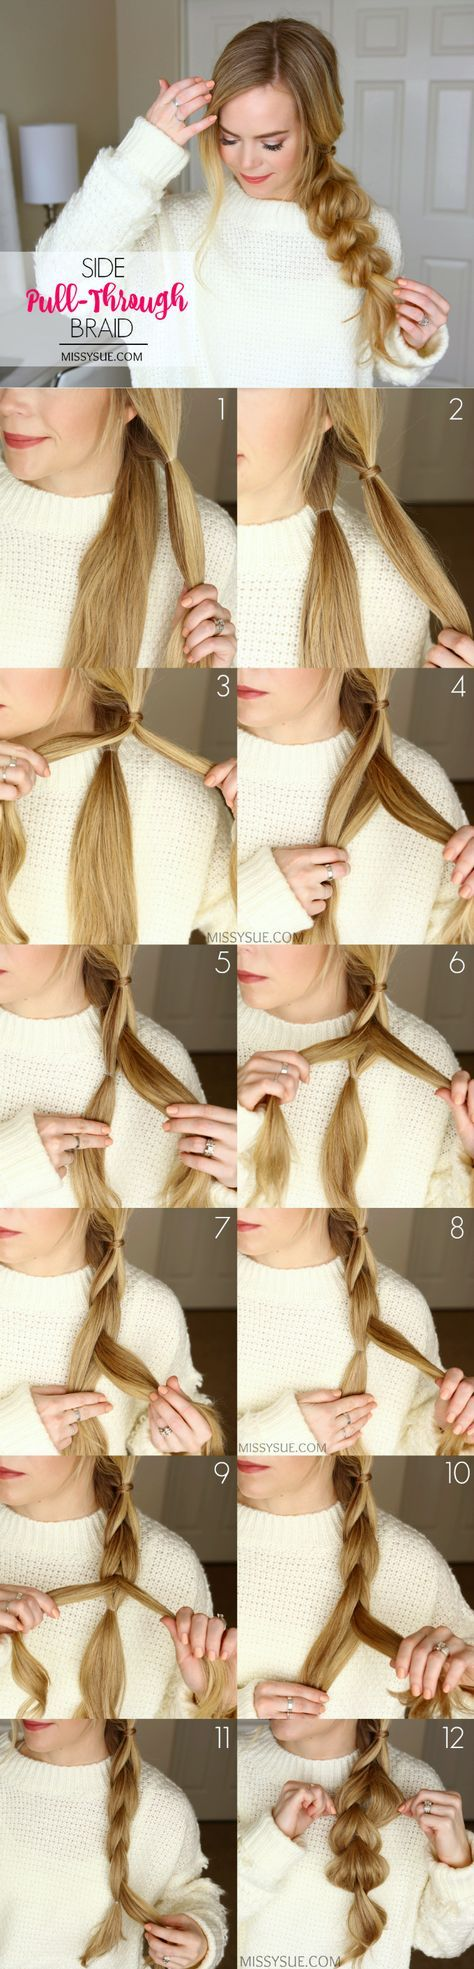 Definitely trying this with some of the wigs I own. Very classical/otome/mori if you accessorize it properly. pull-thru-braid-hairstyle-tutorial-5 ~ Pelo-largo.com